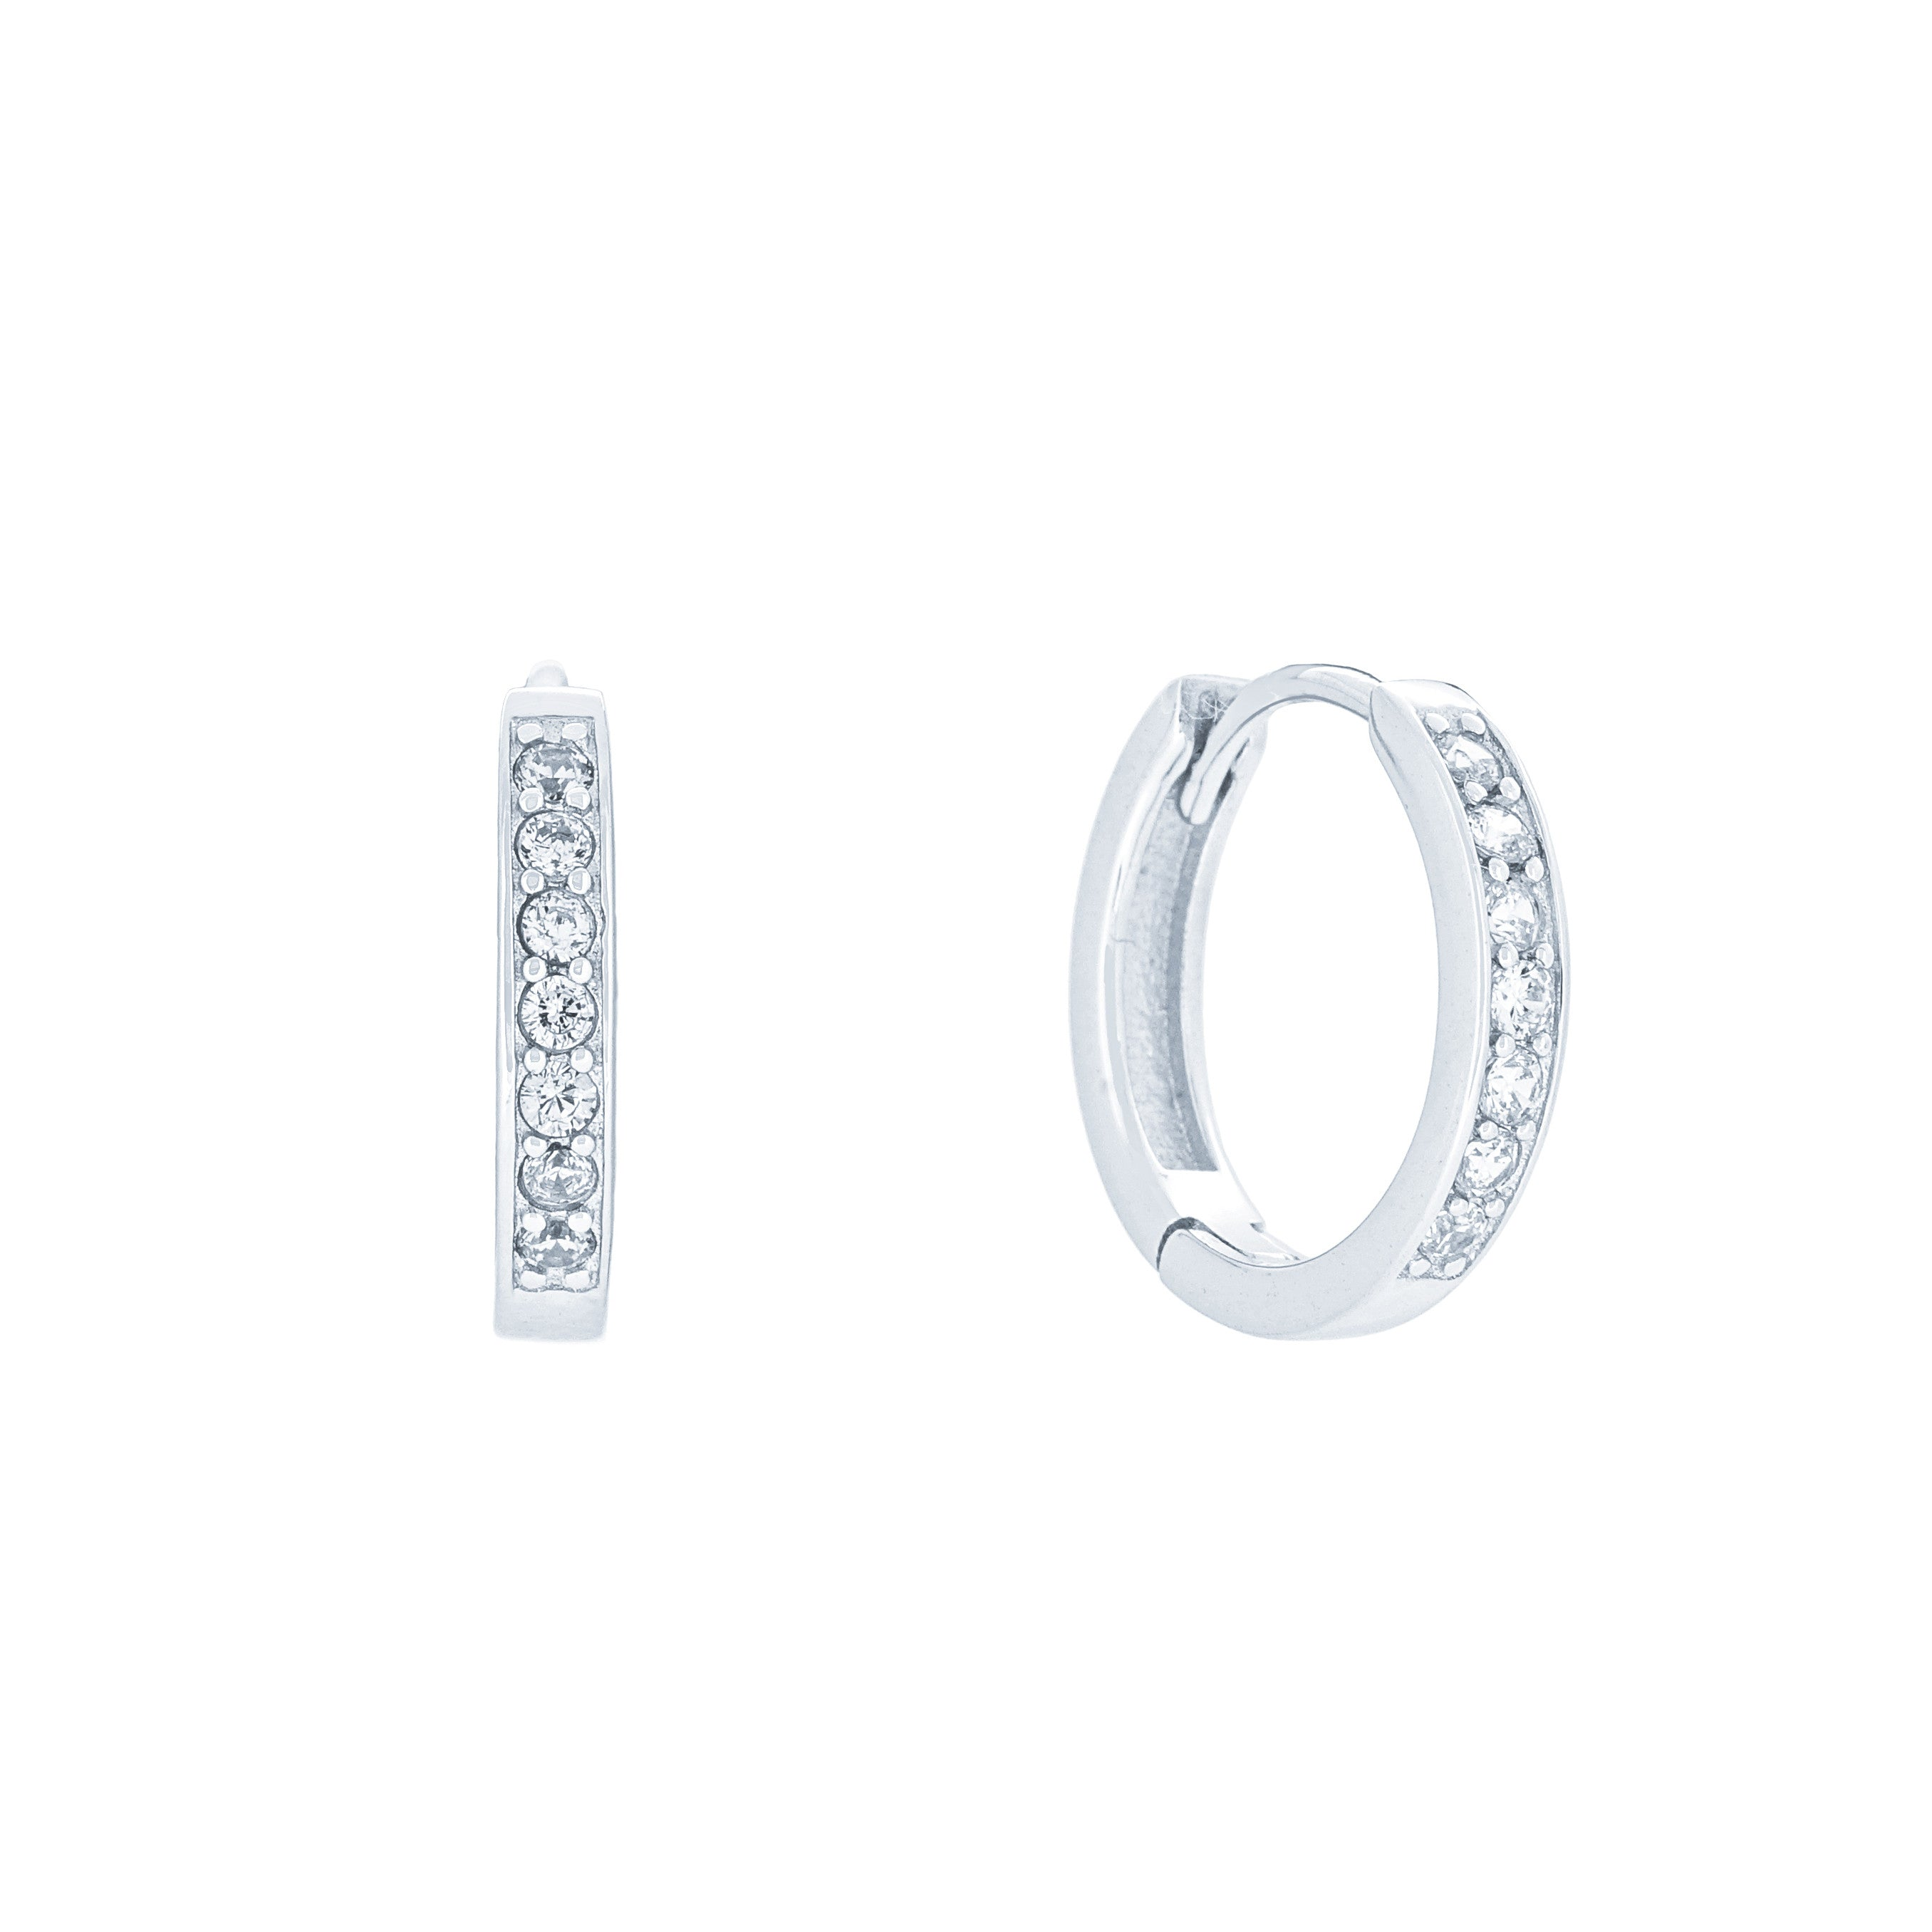 (100074) White Cubic Zirconia 15mm Hoop Earrings In Sterling Silver